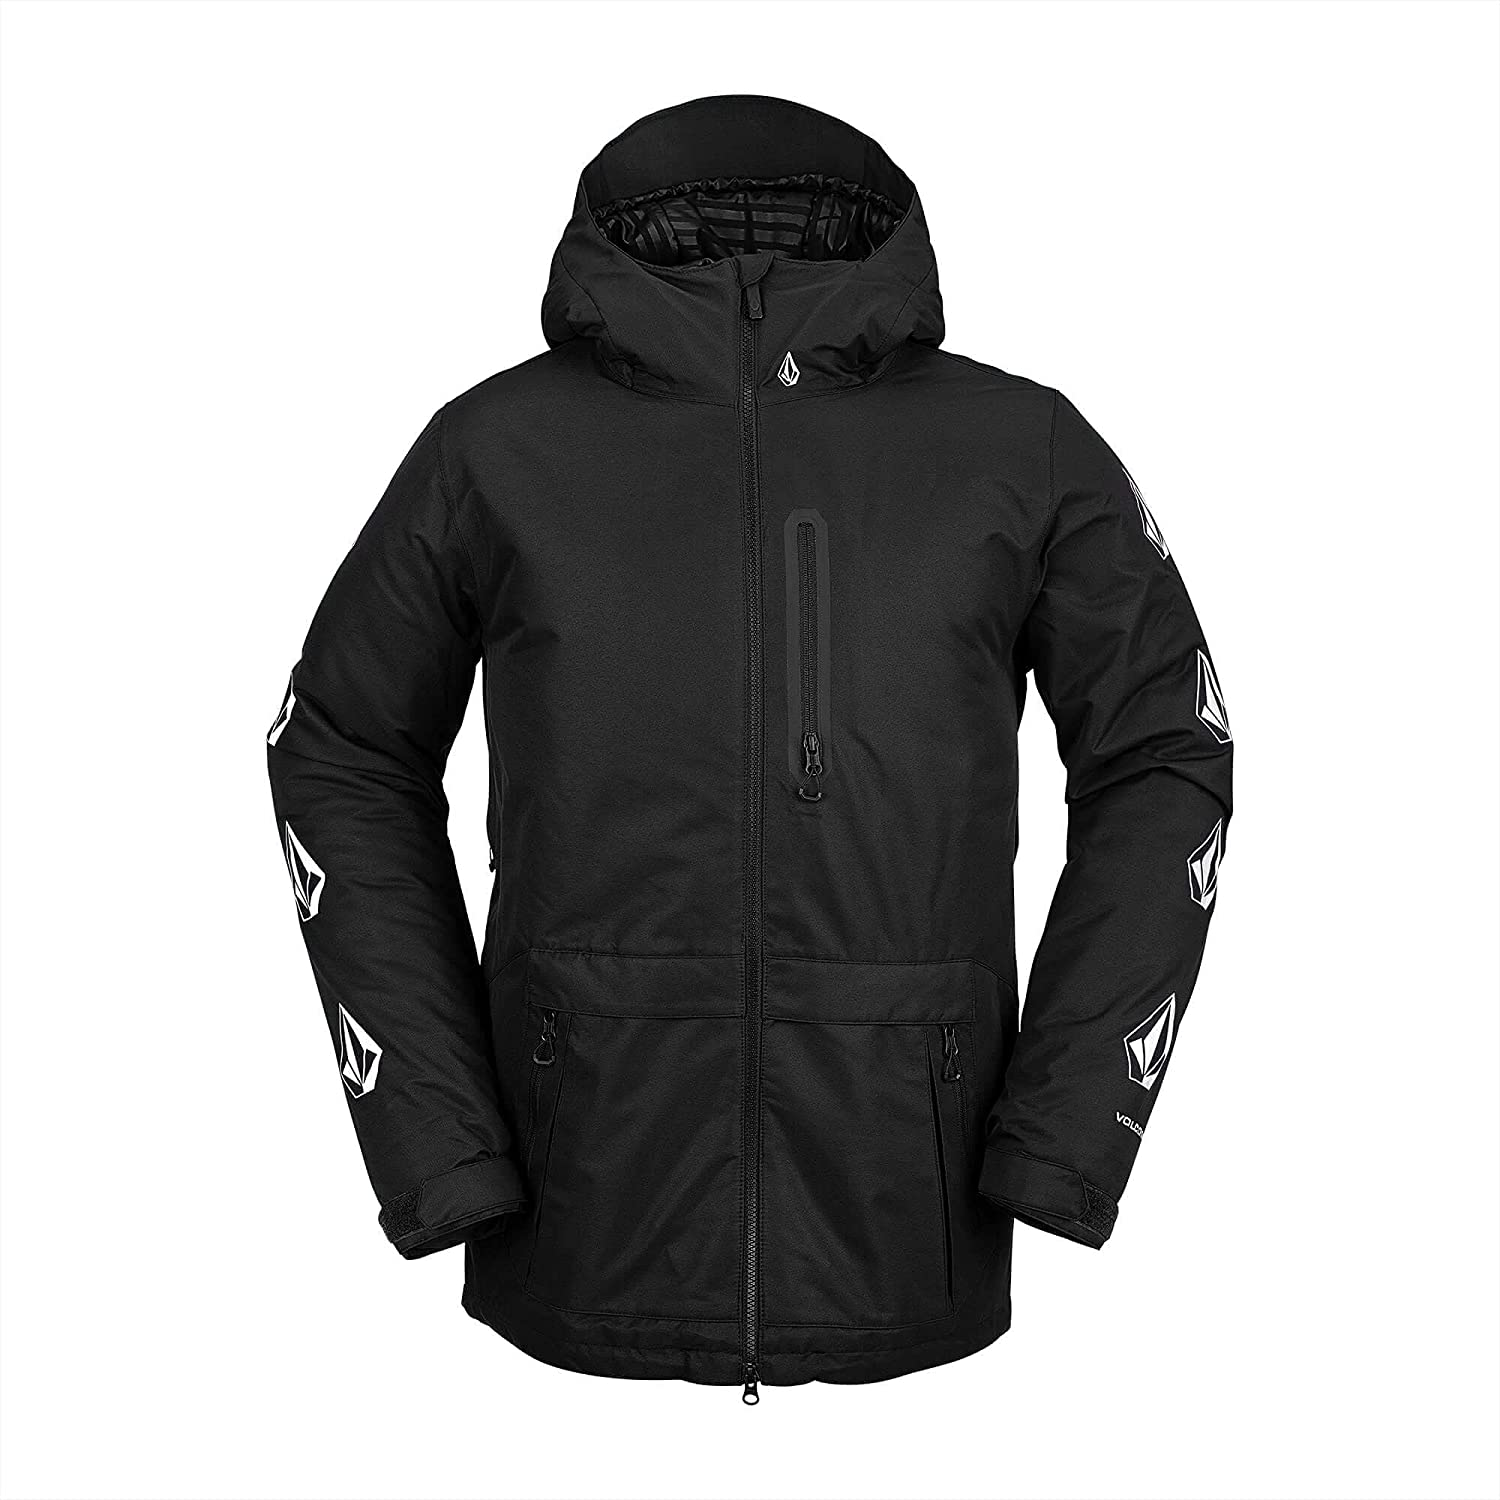 Volcom Men's Deadly Stones Insulated Snowboard Jacket